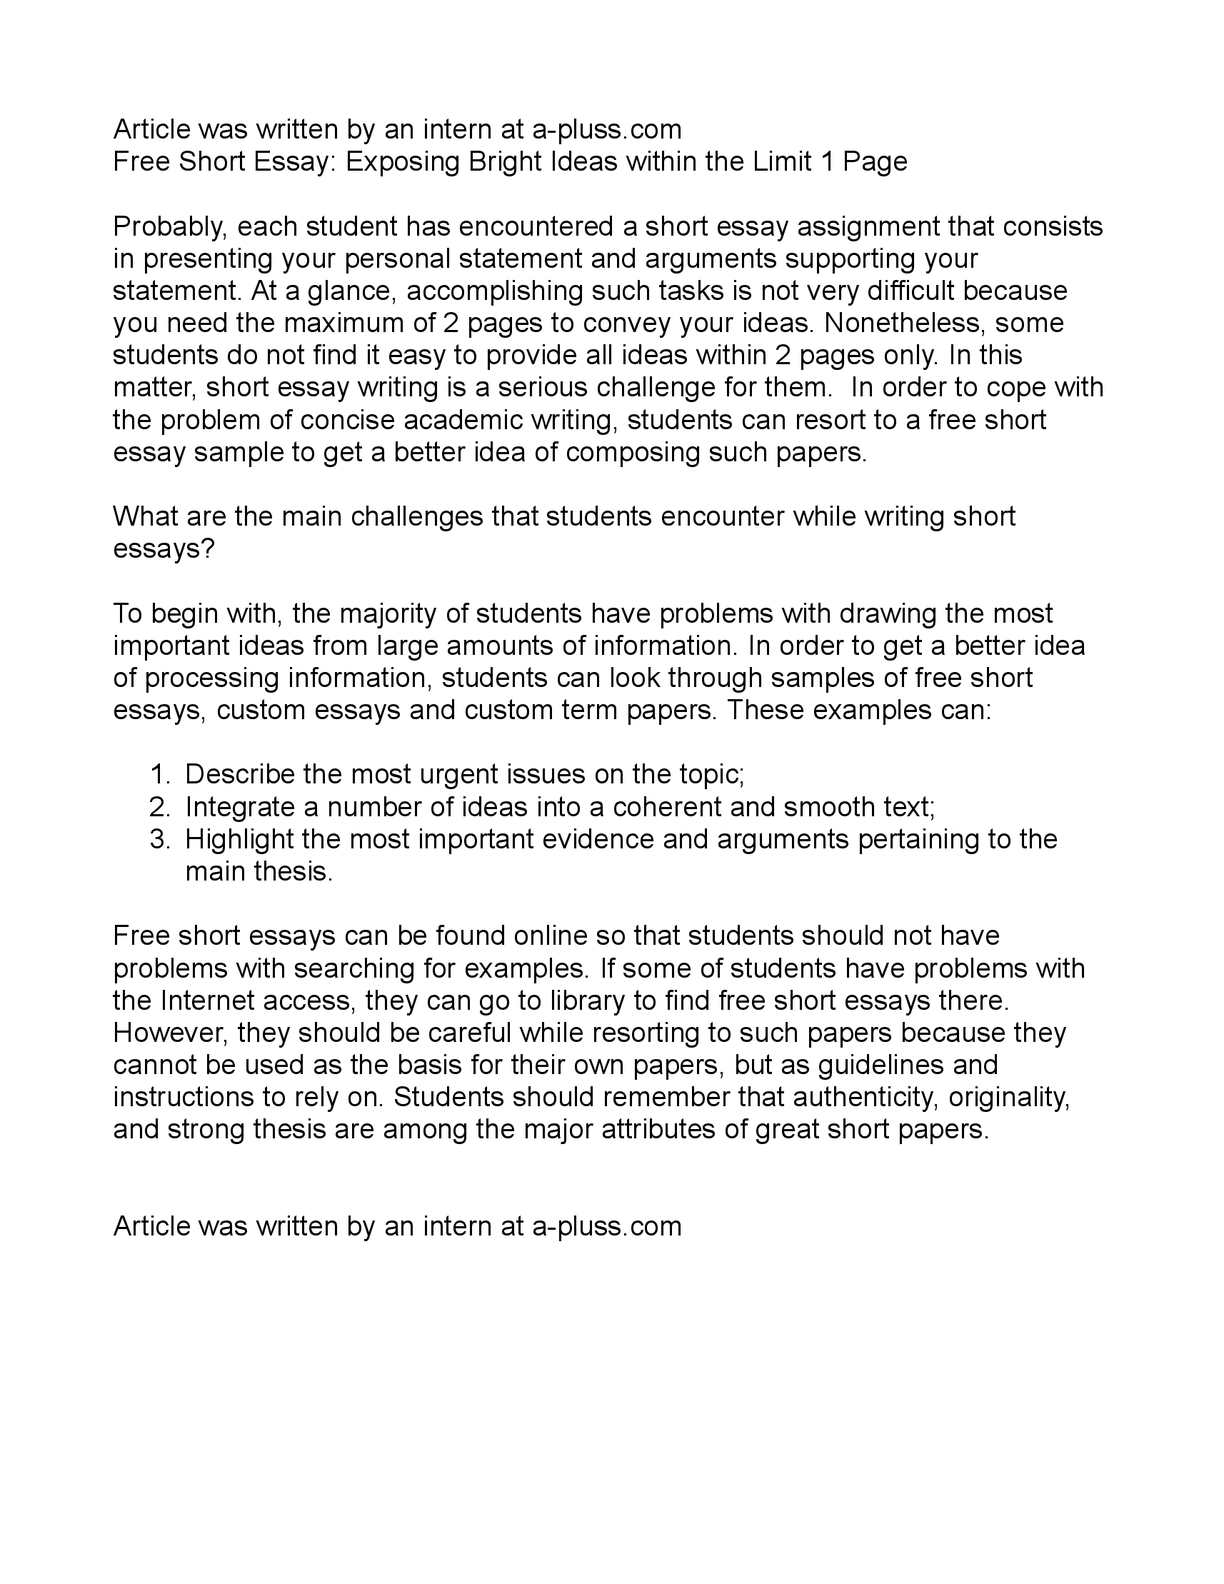 calam eacute o short essay exposing bright ideas in the limit calameacuteo short essay exposing bright ideas in the limit 1 page